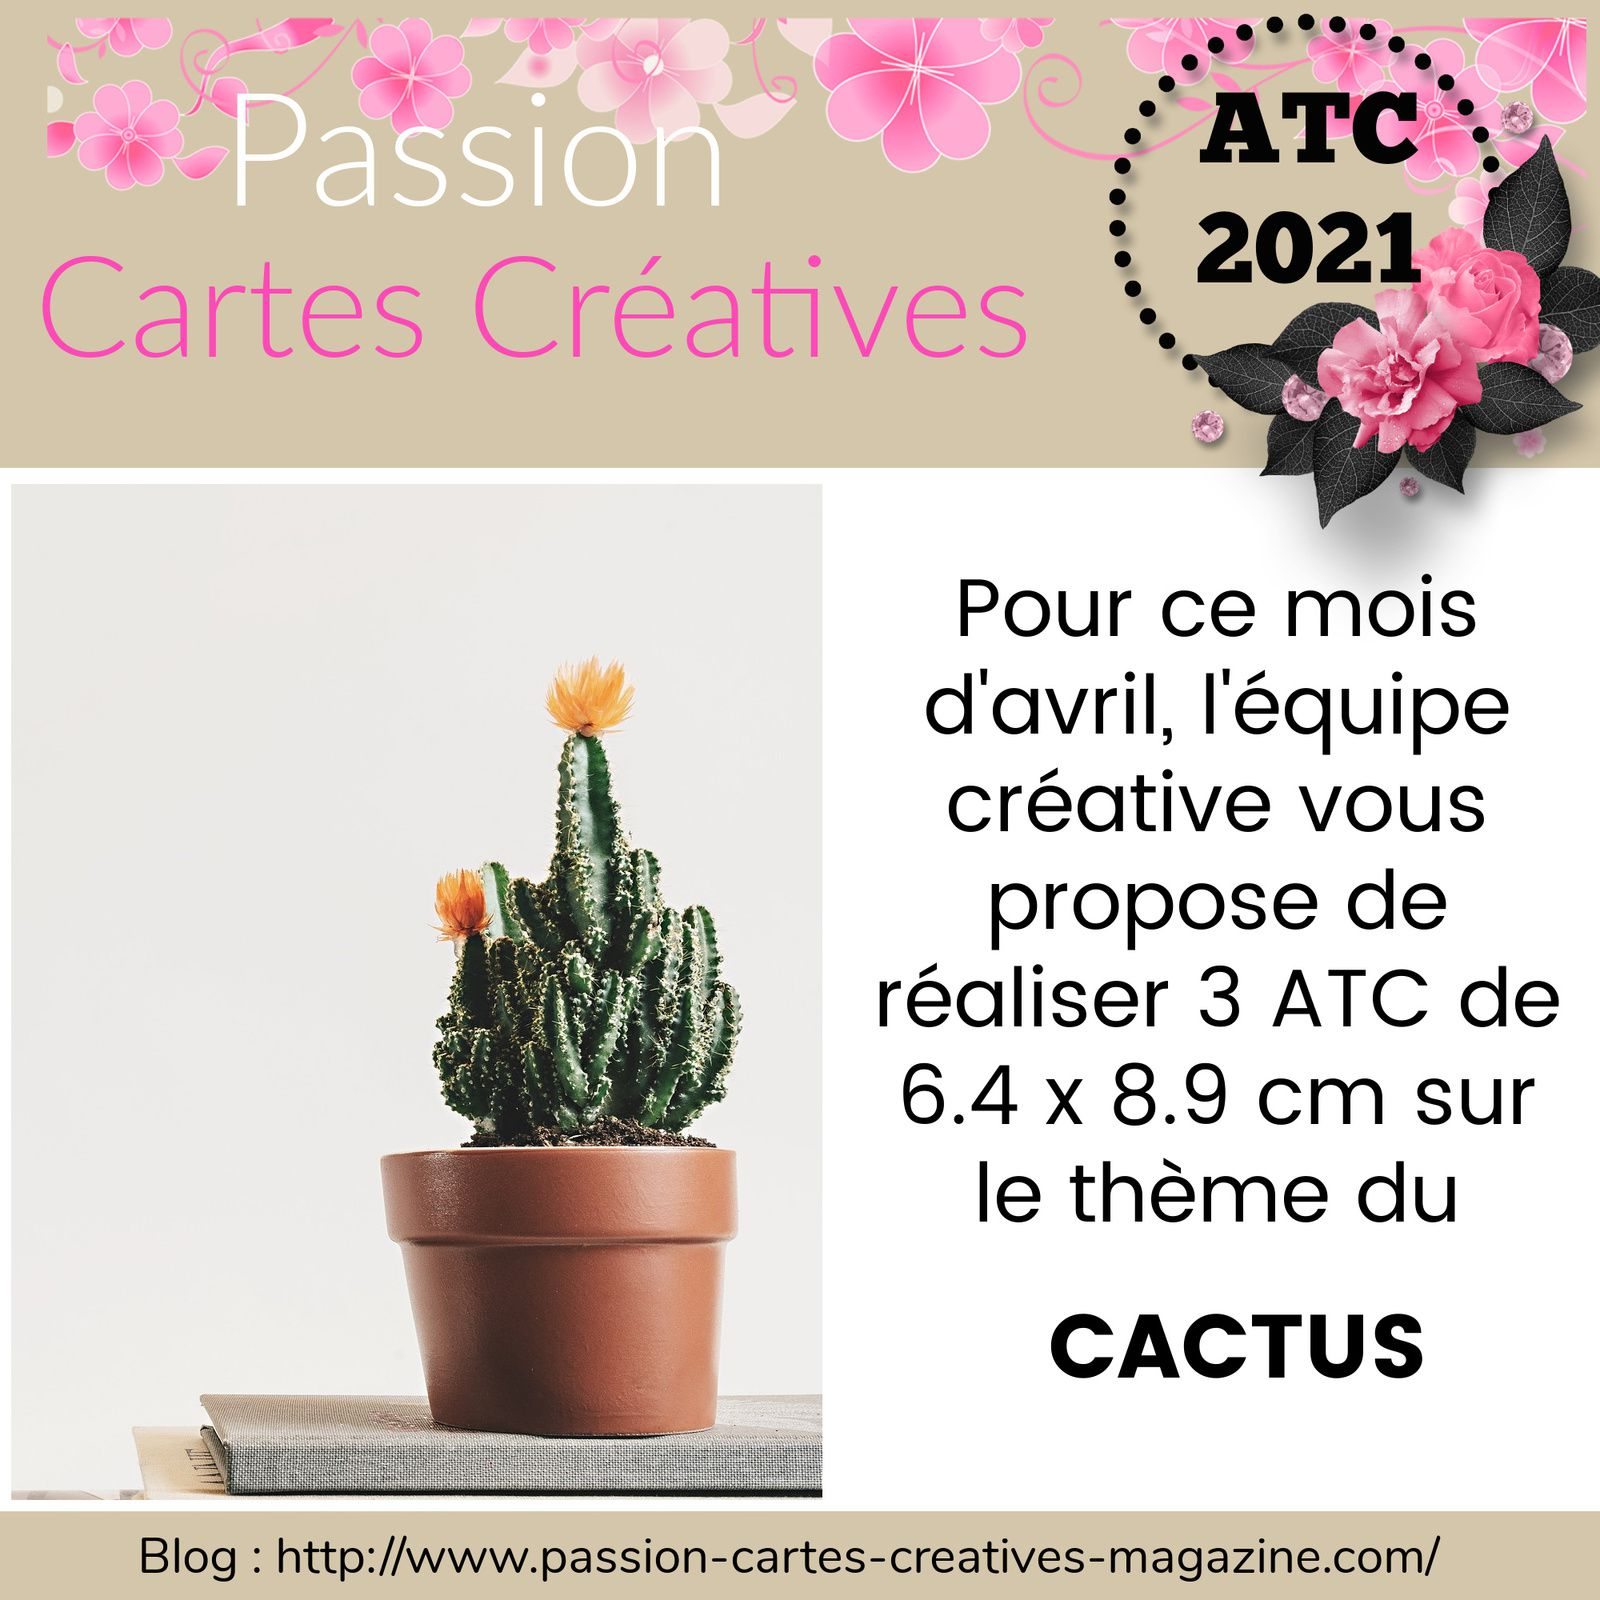 ATC d'avril 2021 de Passion Cartes Créatives